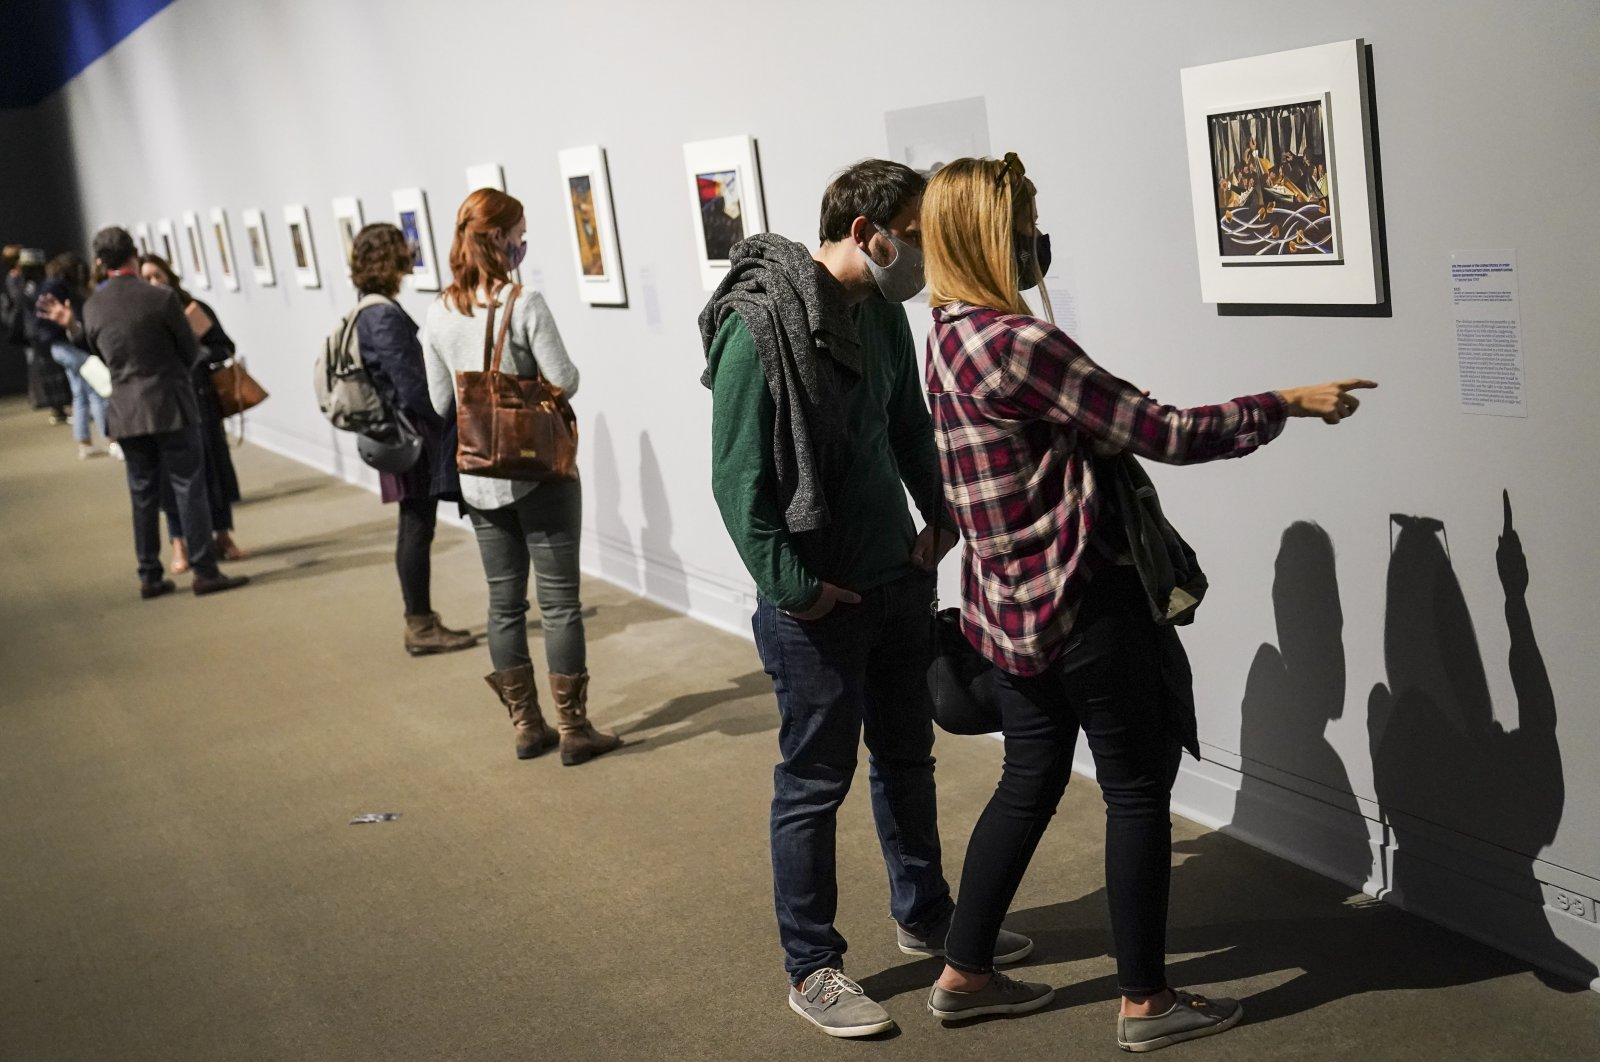 """Visitors wearing masks observe COVID-19 prevention protocols as they browse the """"Jacob Lawrence: The American Struggle"""" exhibition at the Metropolitan Museum of Art, in New York, Oct. 17, 2020. (AP Photo)"""